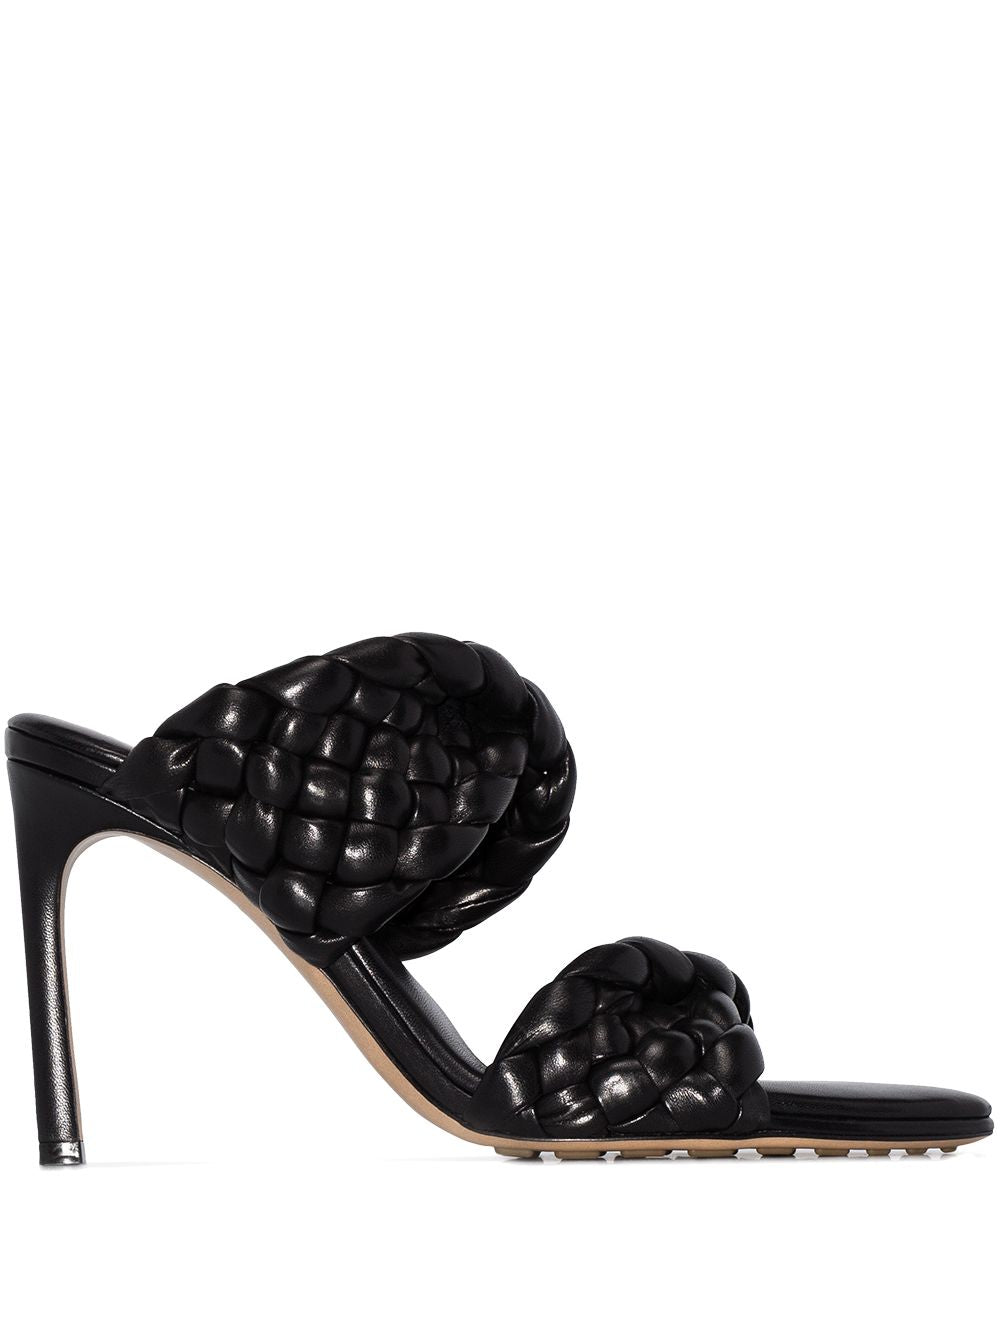 The Curve Sandal - Black